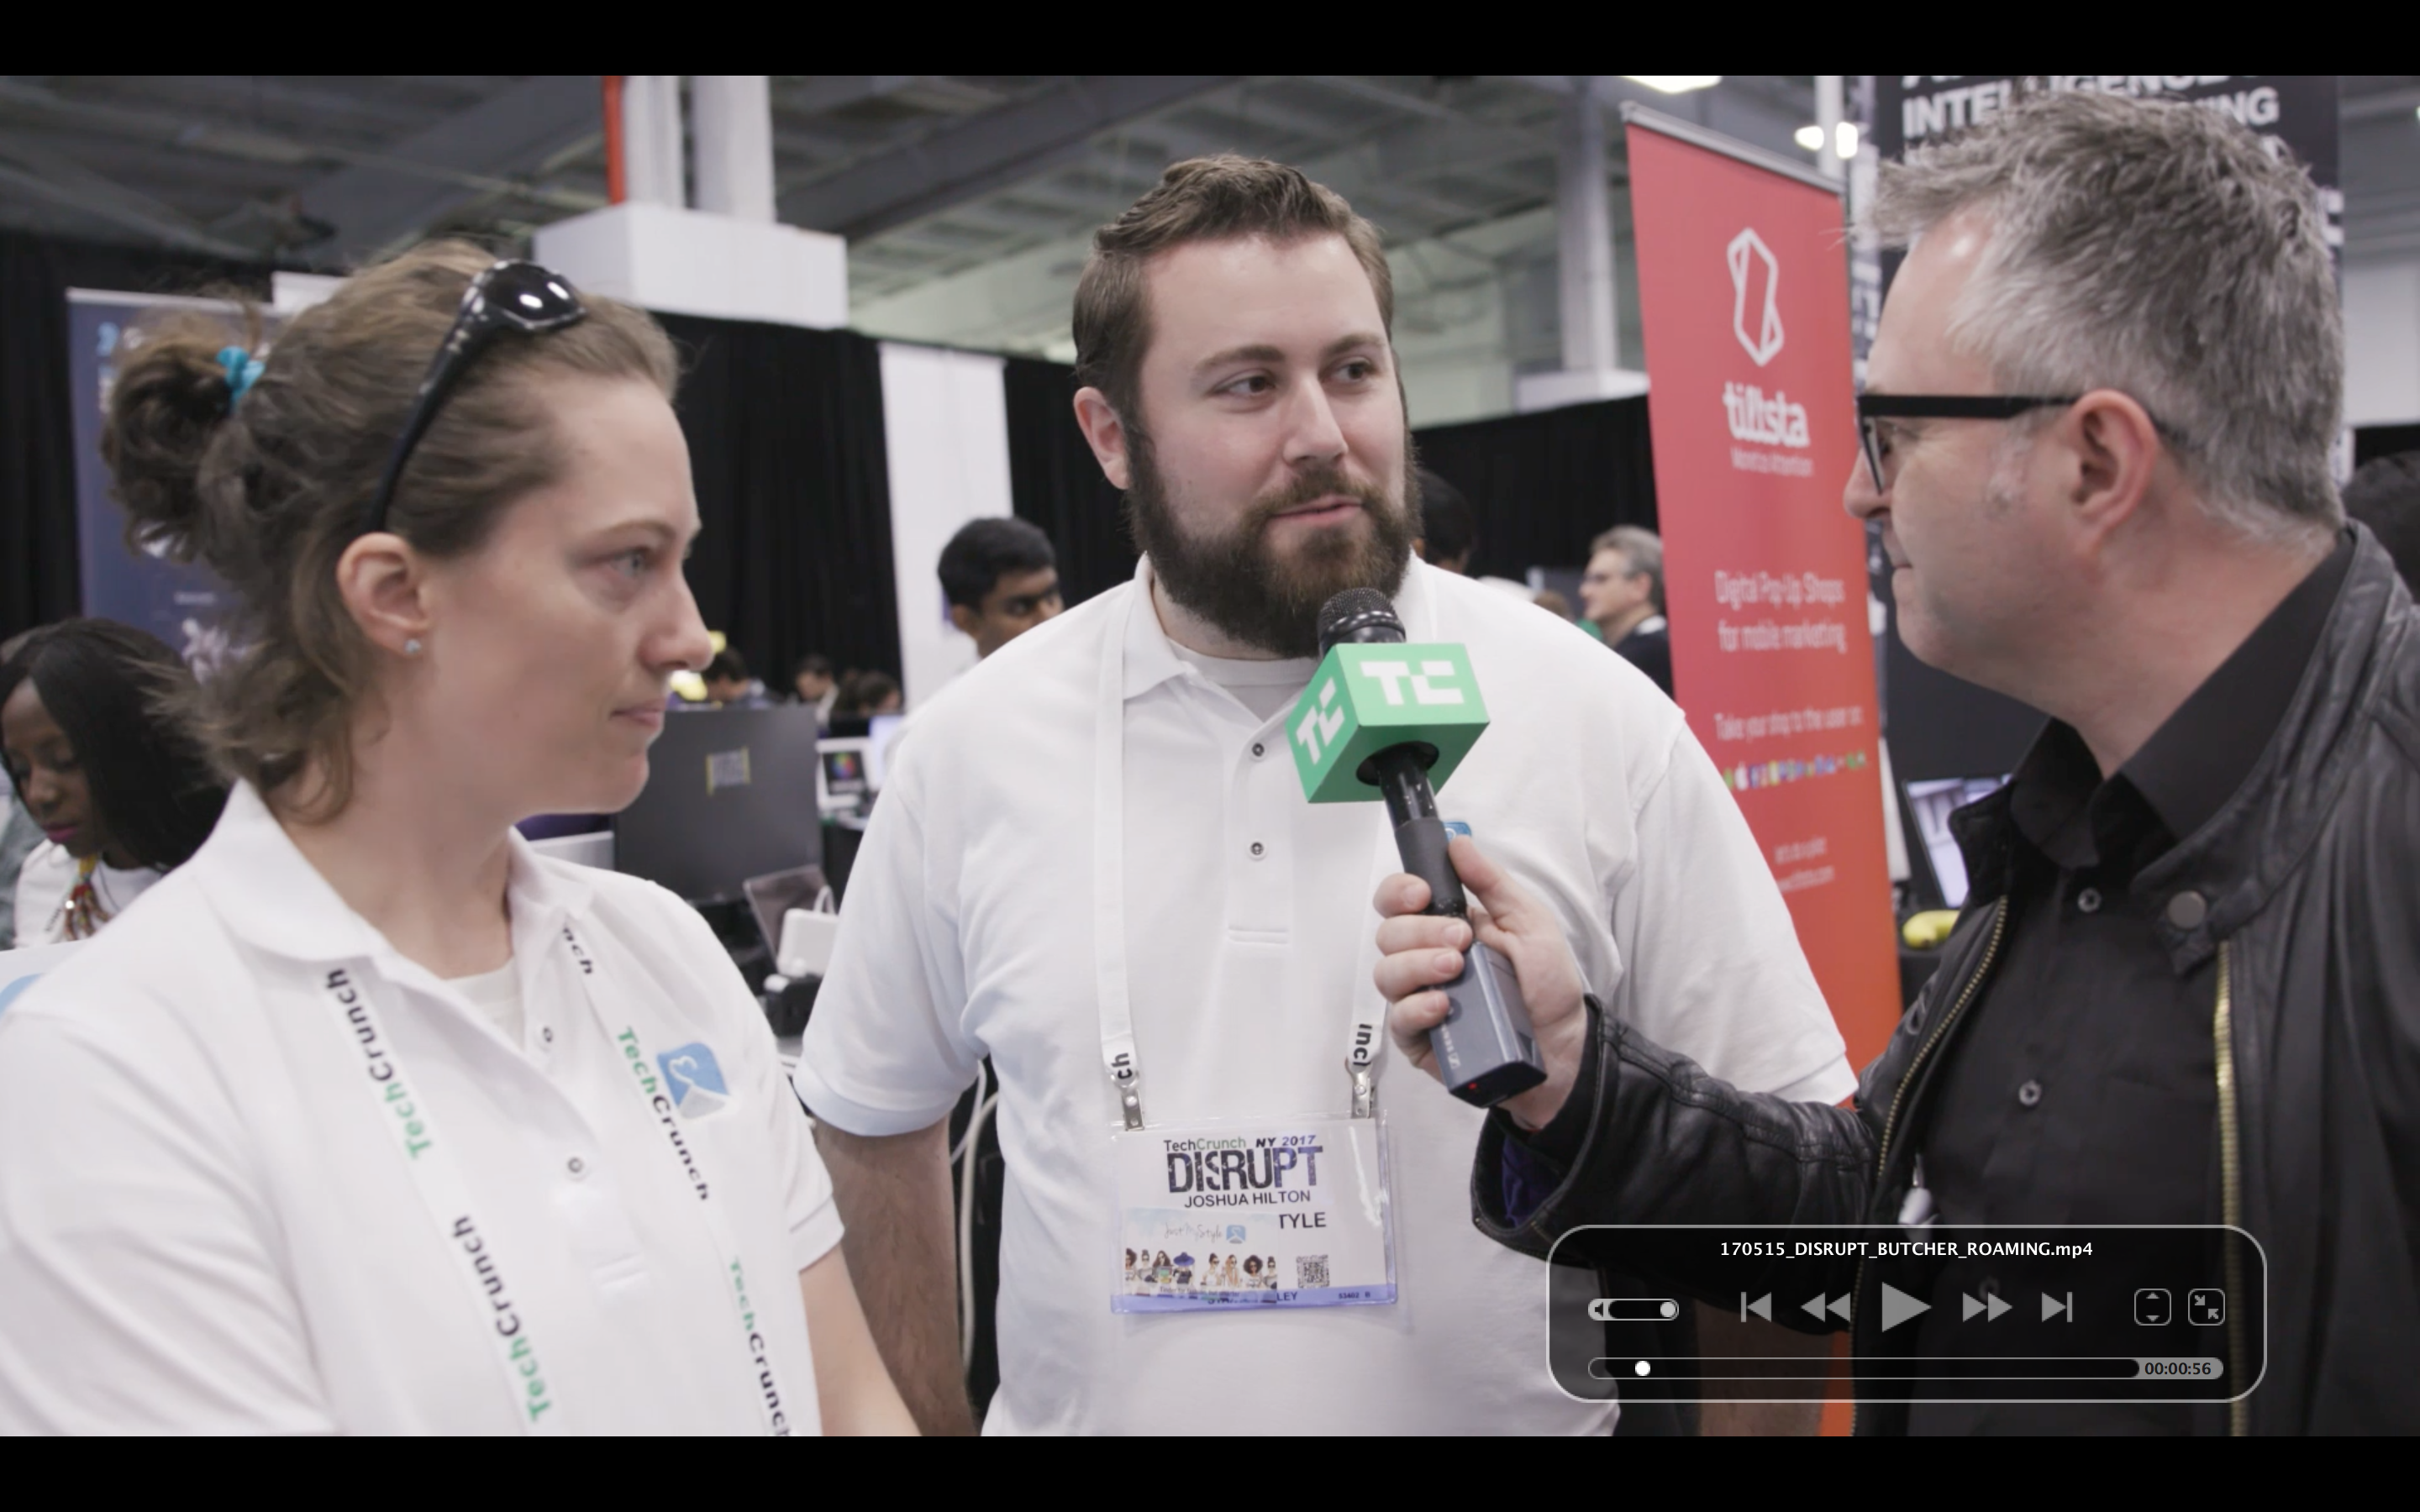 Disrupt 2017 New York Roaming Startup Alley with Mike Butcher